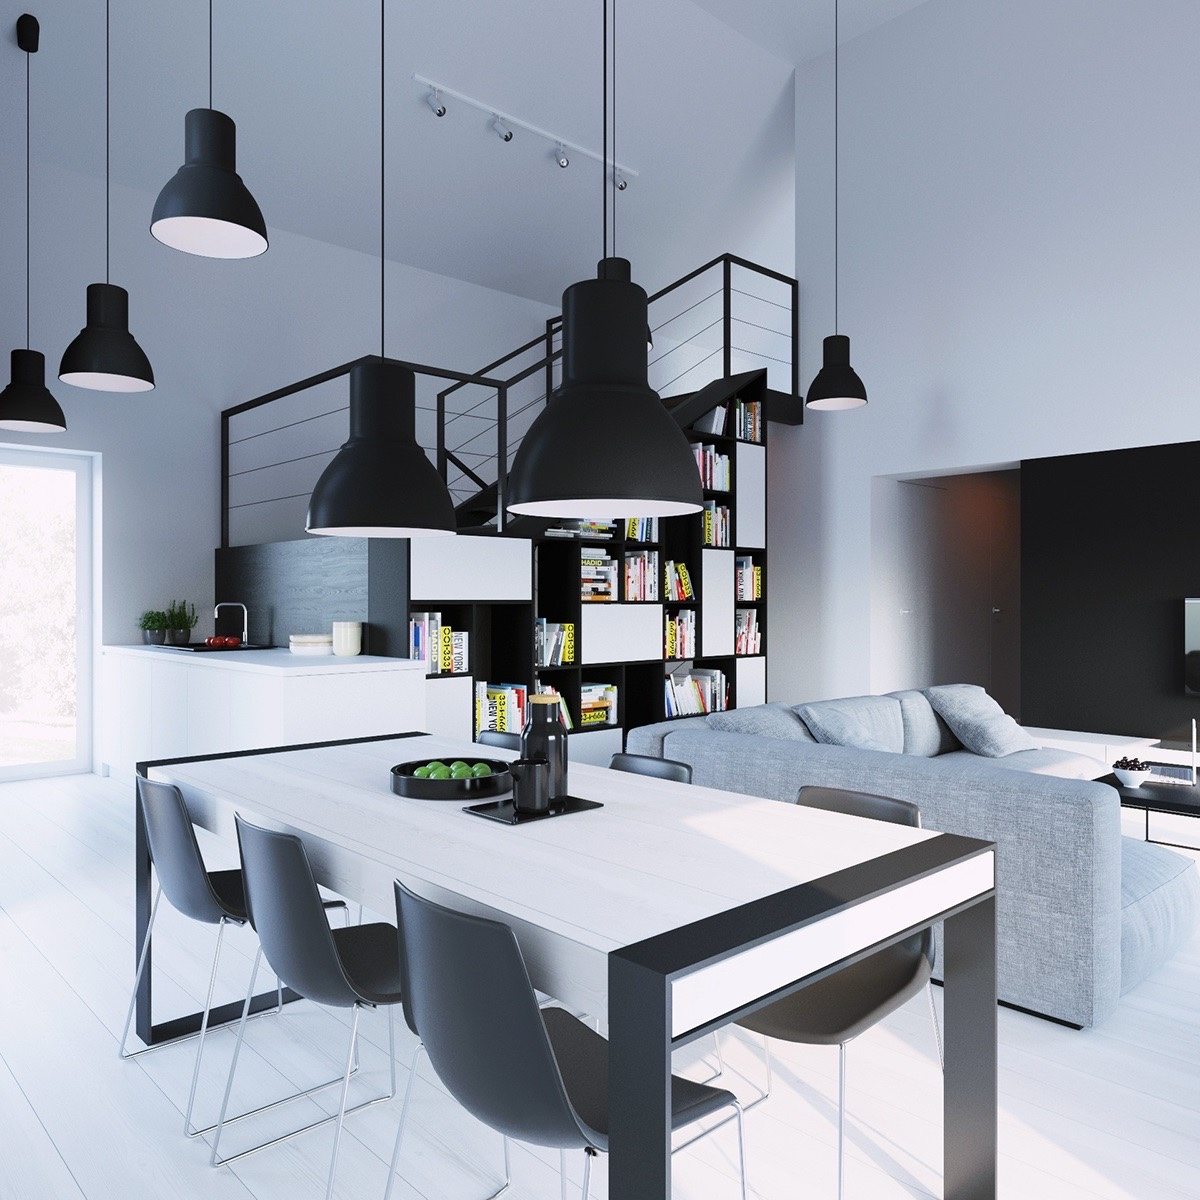 Monochrome Furniture 30 Black And White Dining Rooms That Work Their Monochrome Magic